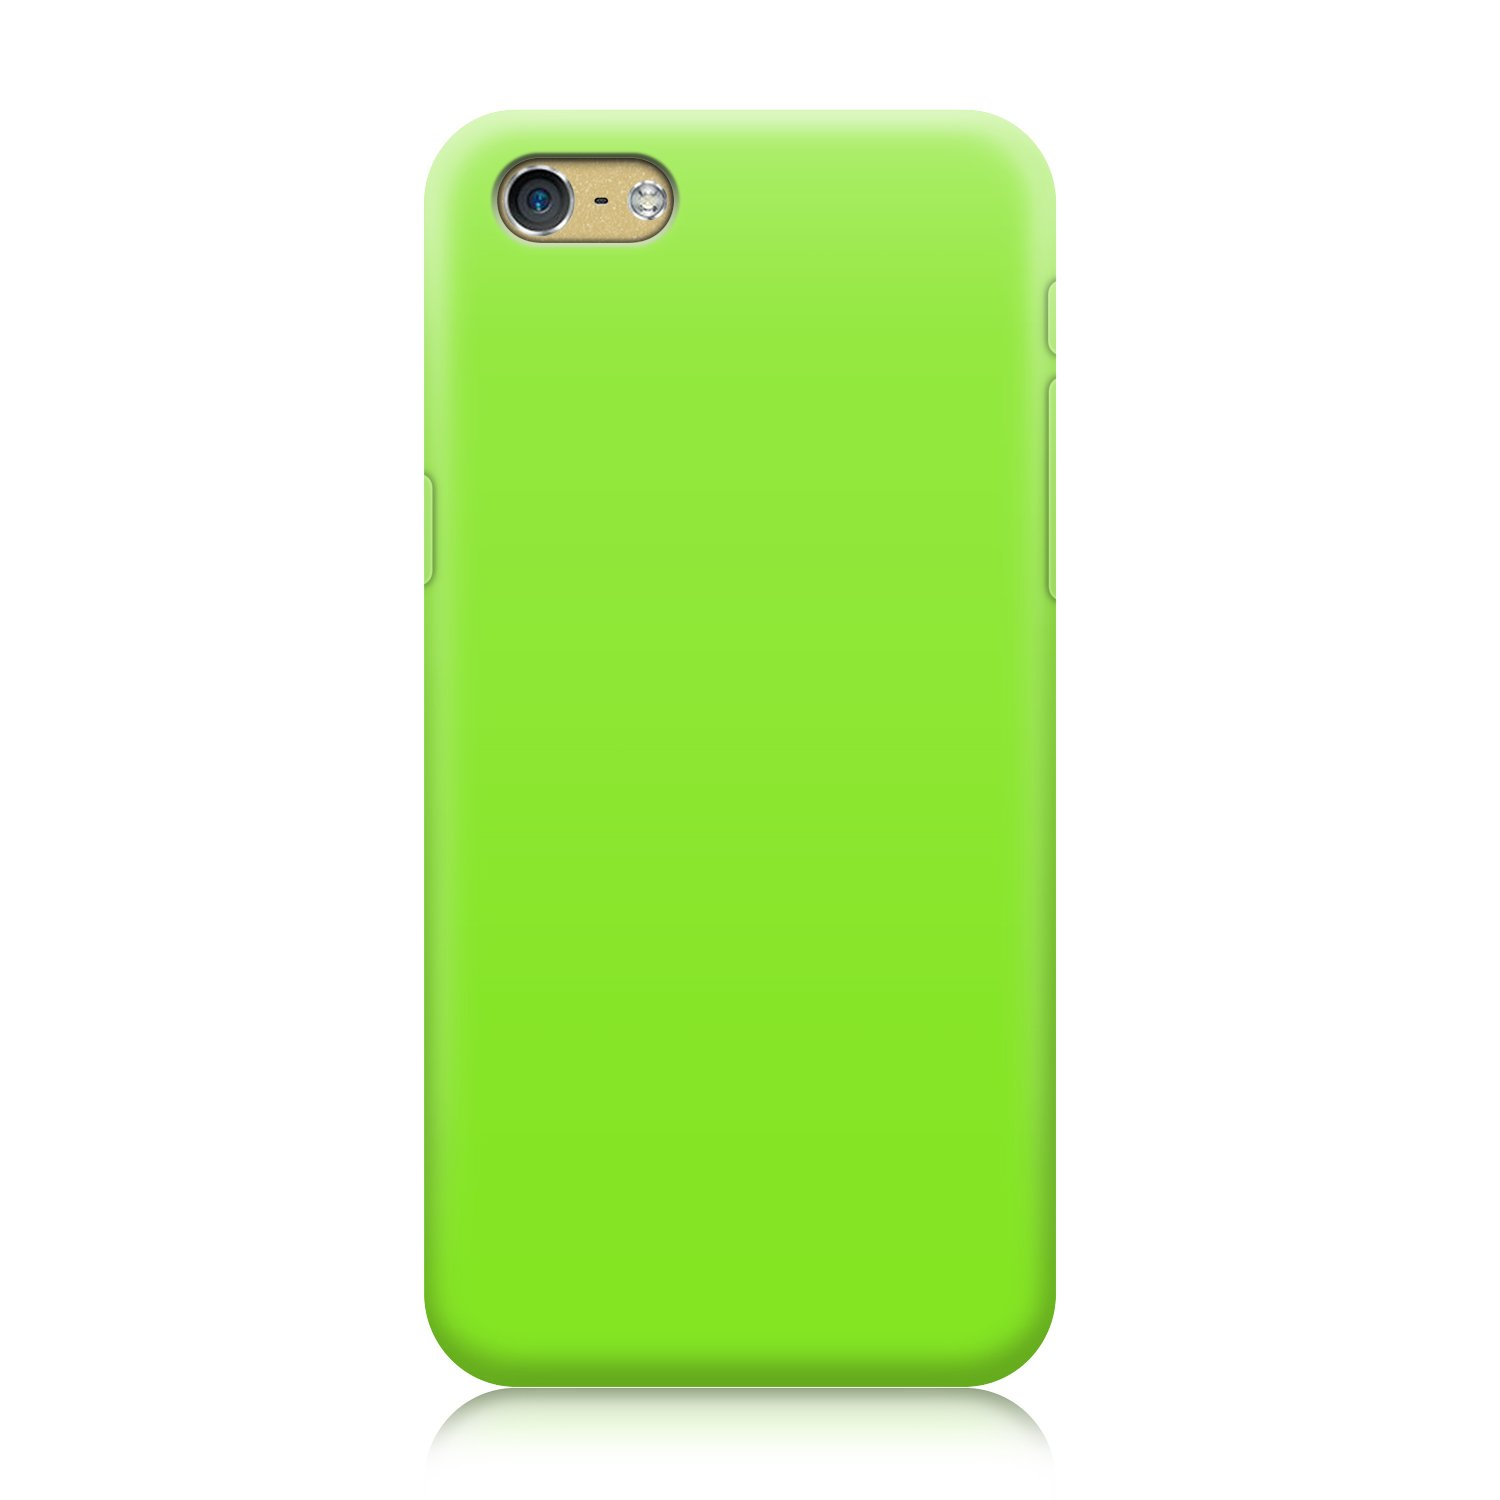 """G-HUB® - 10-in-1 Silicone Cases for APPLE iPHONE 6 (4.7 """") SmartPhone (2014) - Multi Pack of 10 Protective Gel Case Phone Covers in ASSORTED COLOURS (Each Flexible Skin Cover included in this pack is of a Different Colour and Custom Designed to fit this specific model of Smart Phone)"""